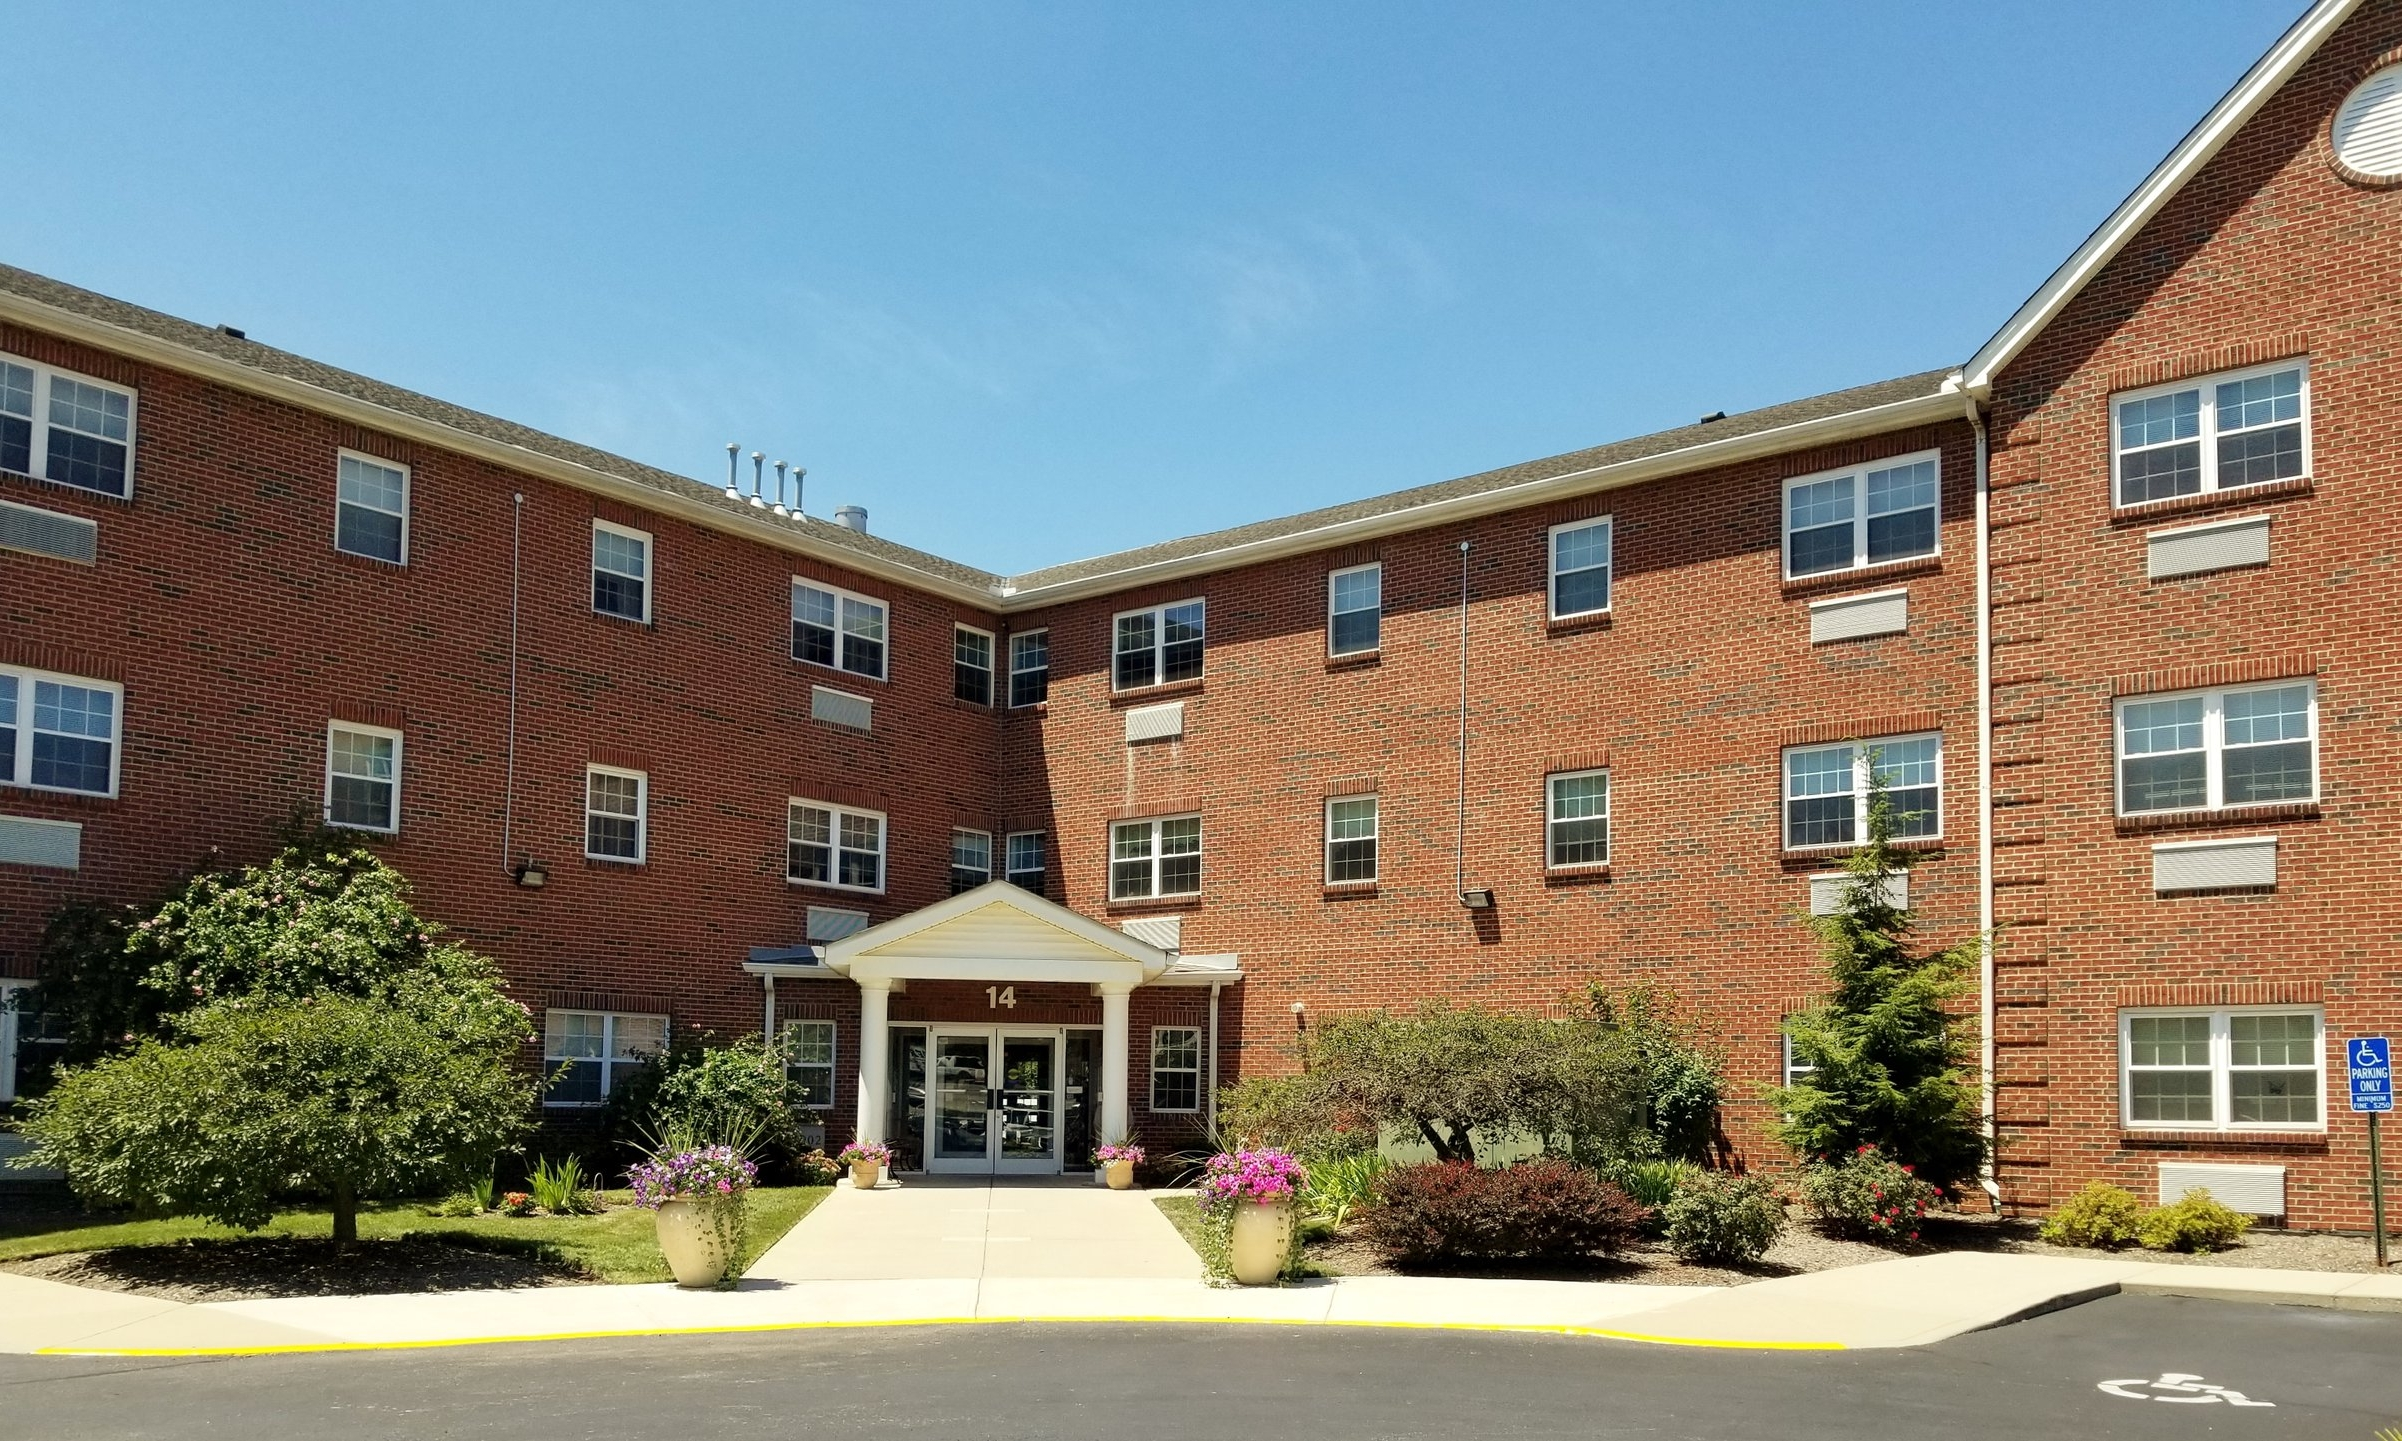 AHEPA 127 Senior Apartments - 14 Easley DriveMilford, OH 45150(513) 575-1820TTY: (800) 750-0750 or 711 (English)TTY: (888) 269-0678 or 711 (Español)info@ahepahousing.org